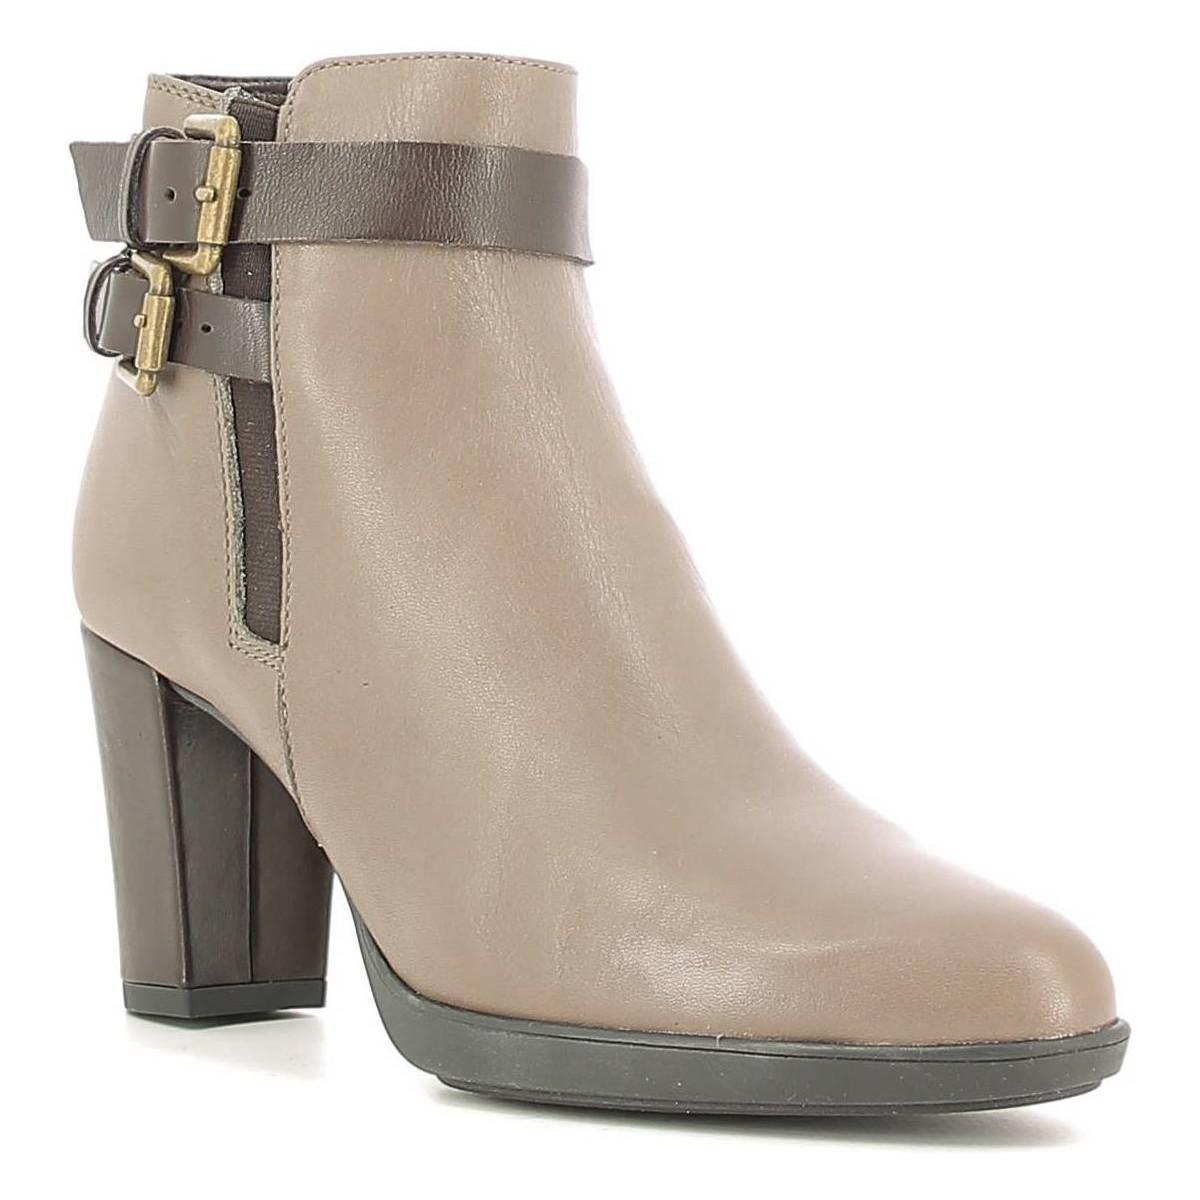 The Flexx B652/02 Ankle Boots Women Pietra Women's Low Ankle Boots In Grey in Grey